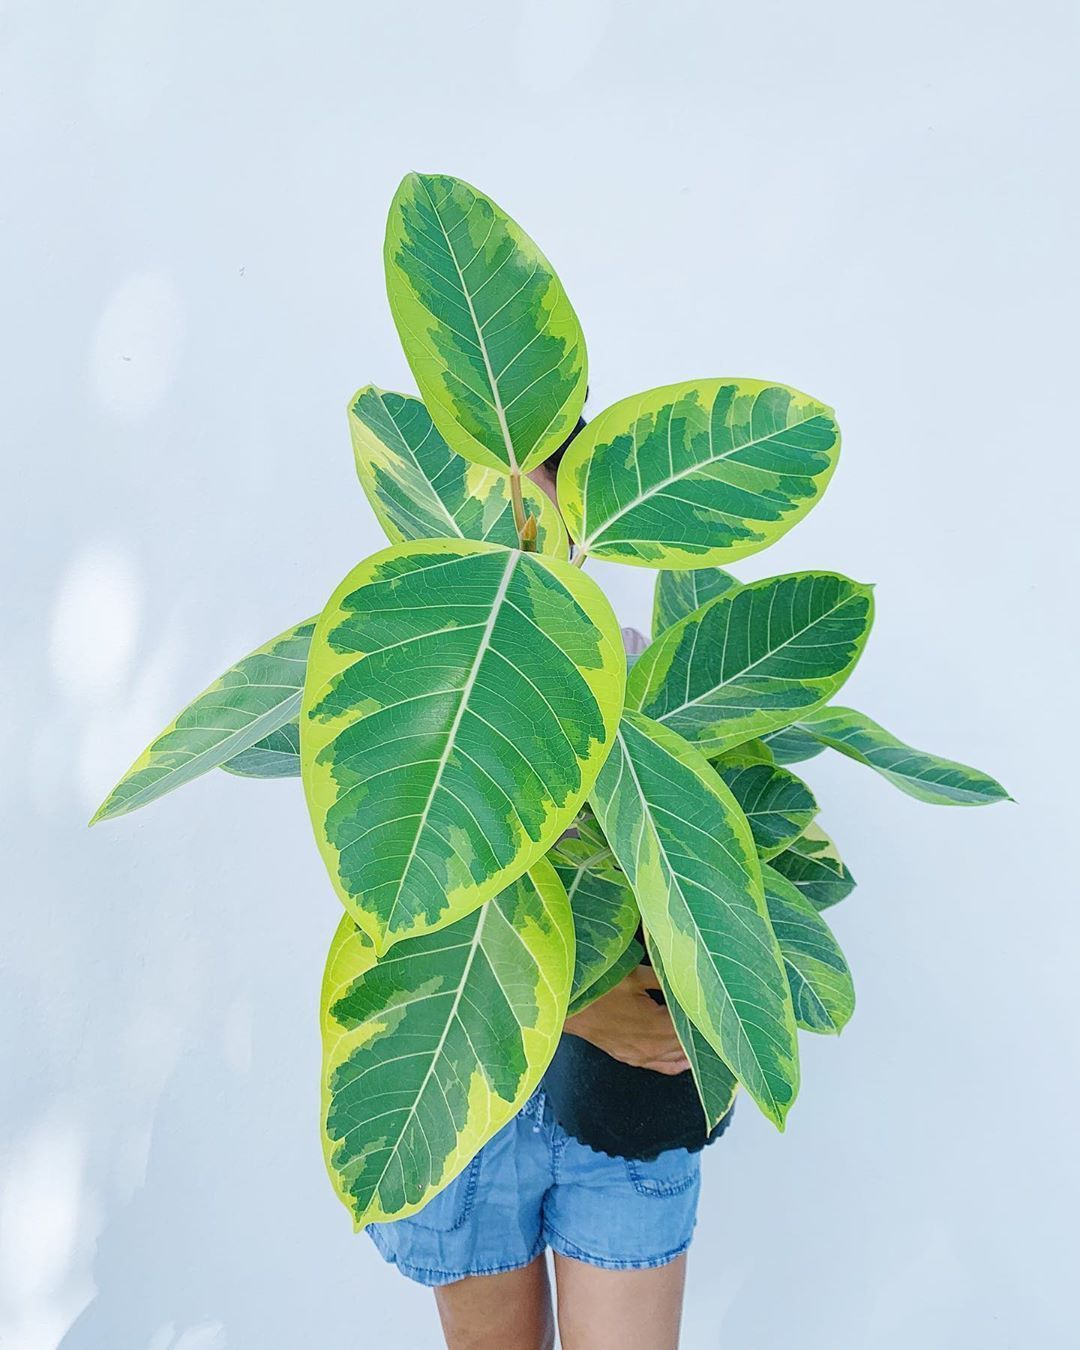 We continue our countdown 6 days to go!These 3 gal Ficus altissima well be a